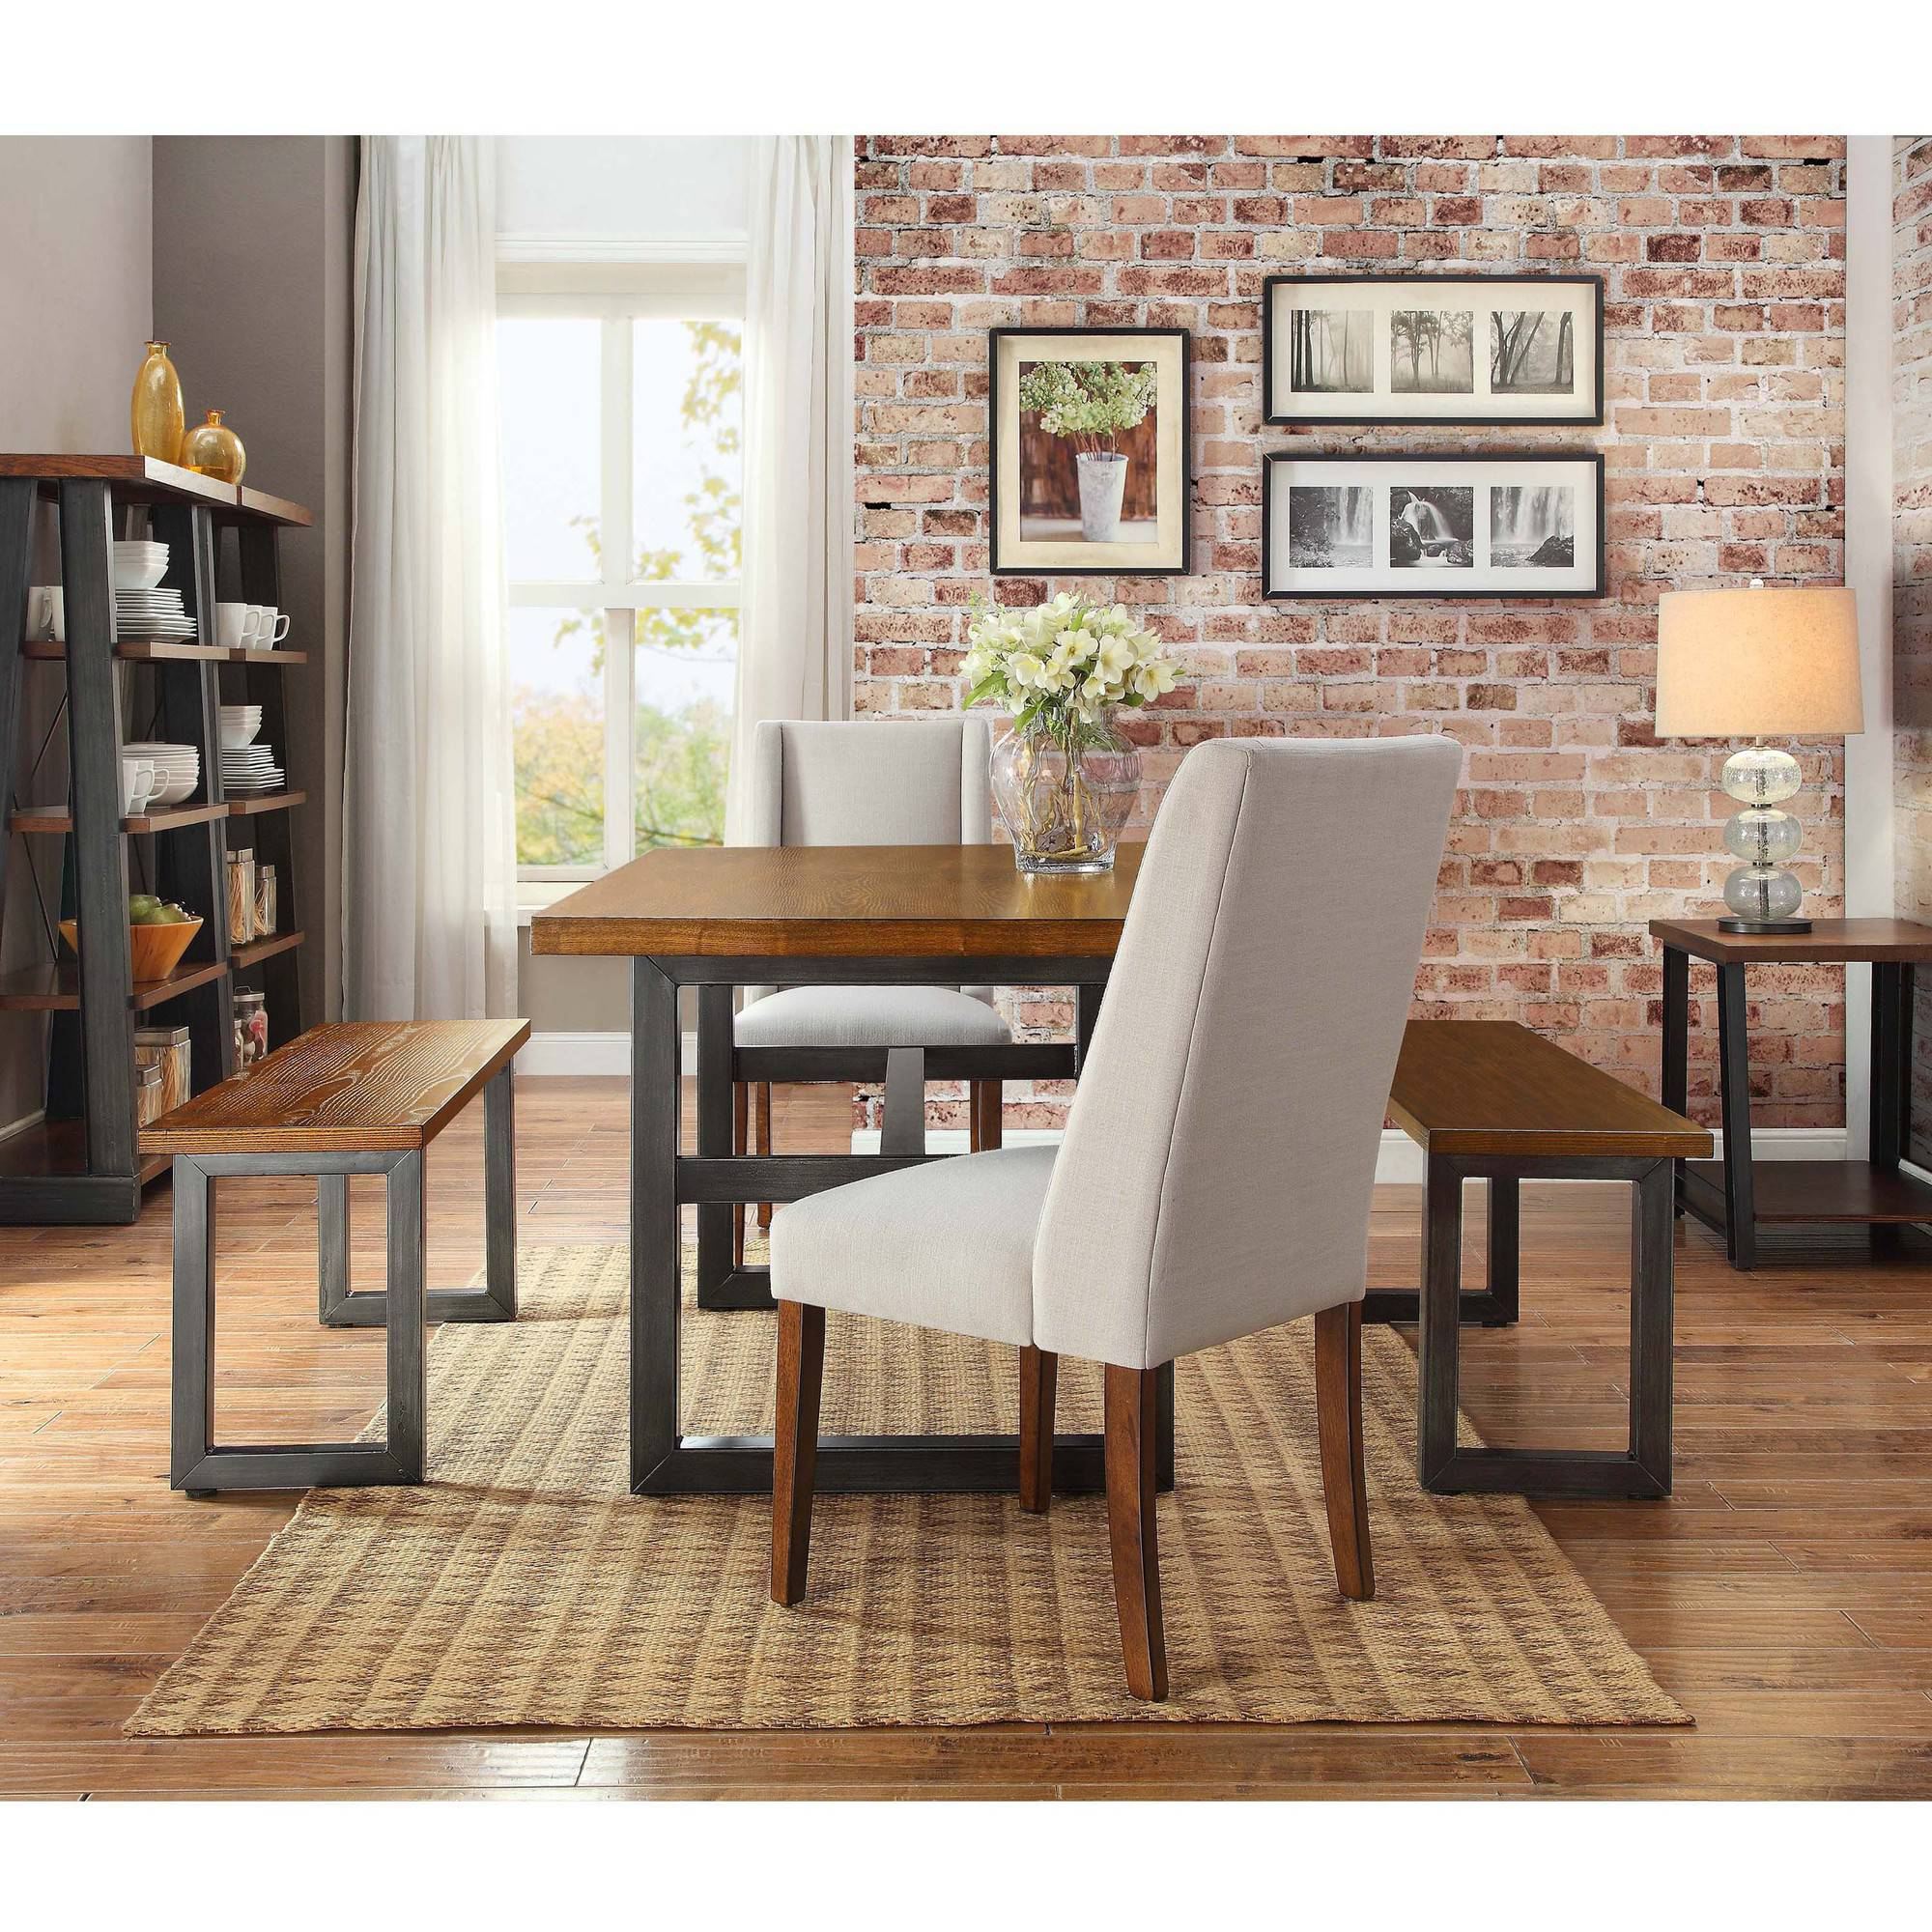 better homes and gardens mercer 6-piece dining set - walmart